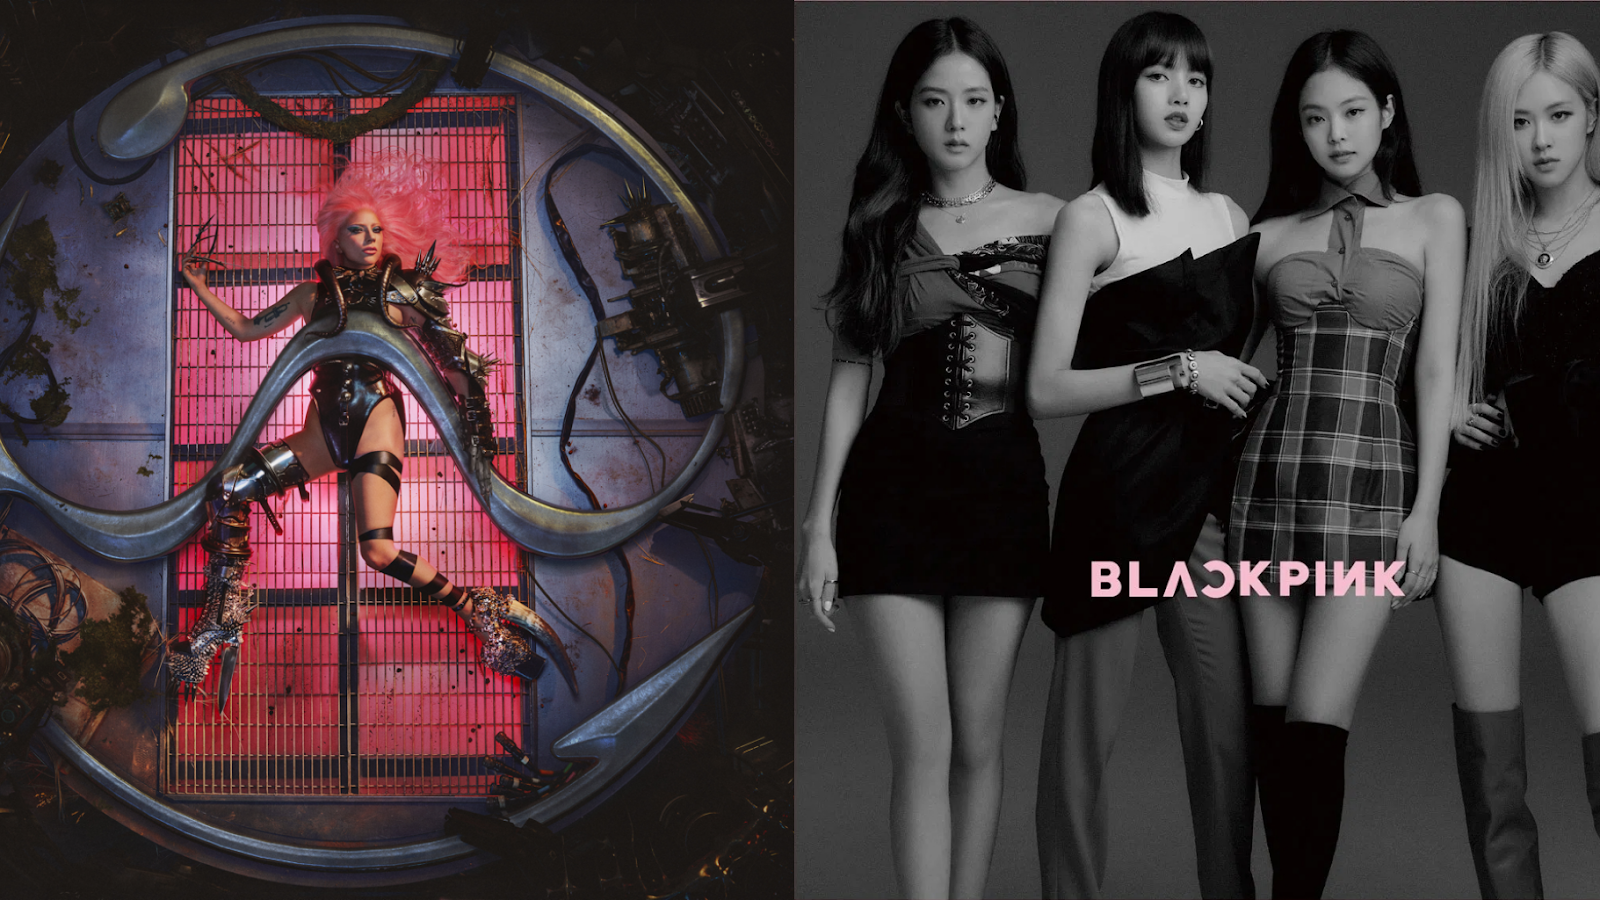 Lady Gaga and BLACKPINK's 'Sour Candy' Entered the UK's Top 40 Official Charts